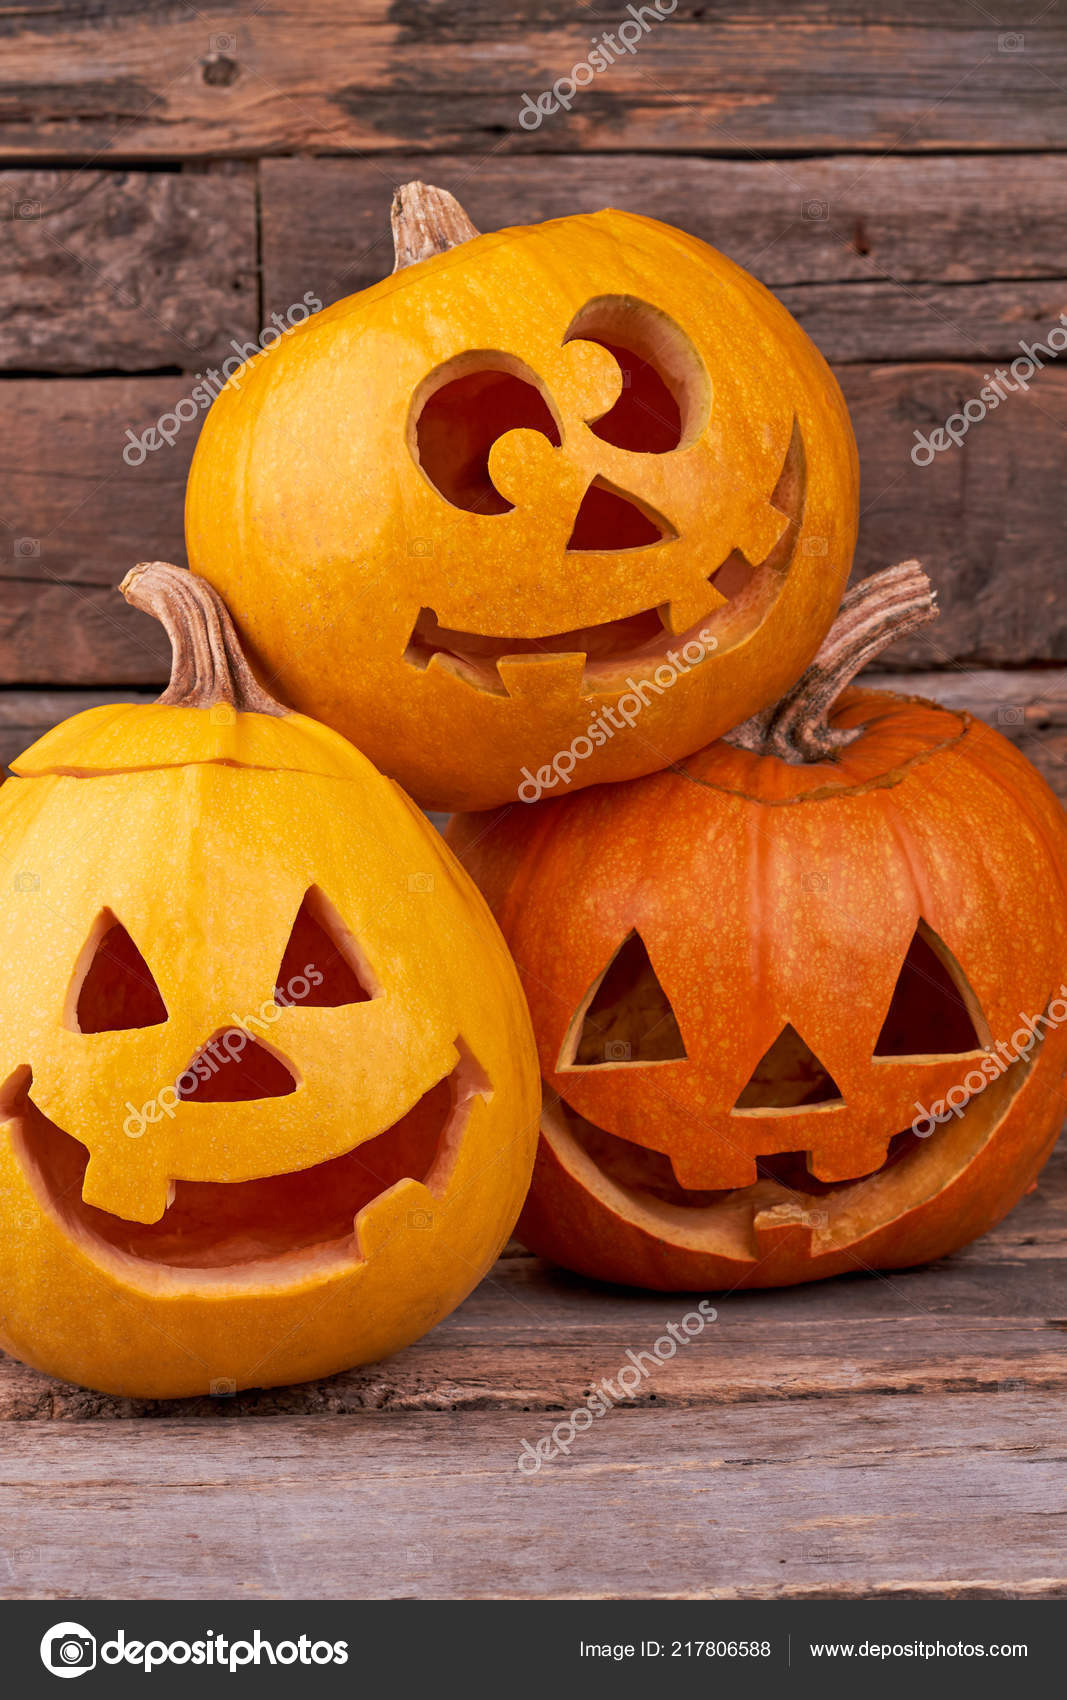 Pictures Funny Halloween Three Funny Halloween Pumpkins Stock Photo C Denisfilm 217806588